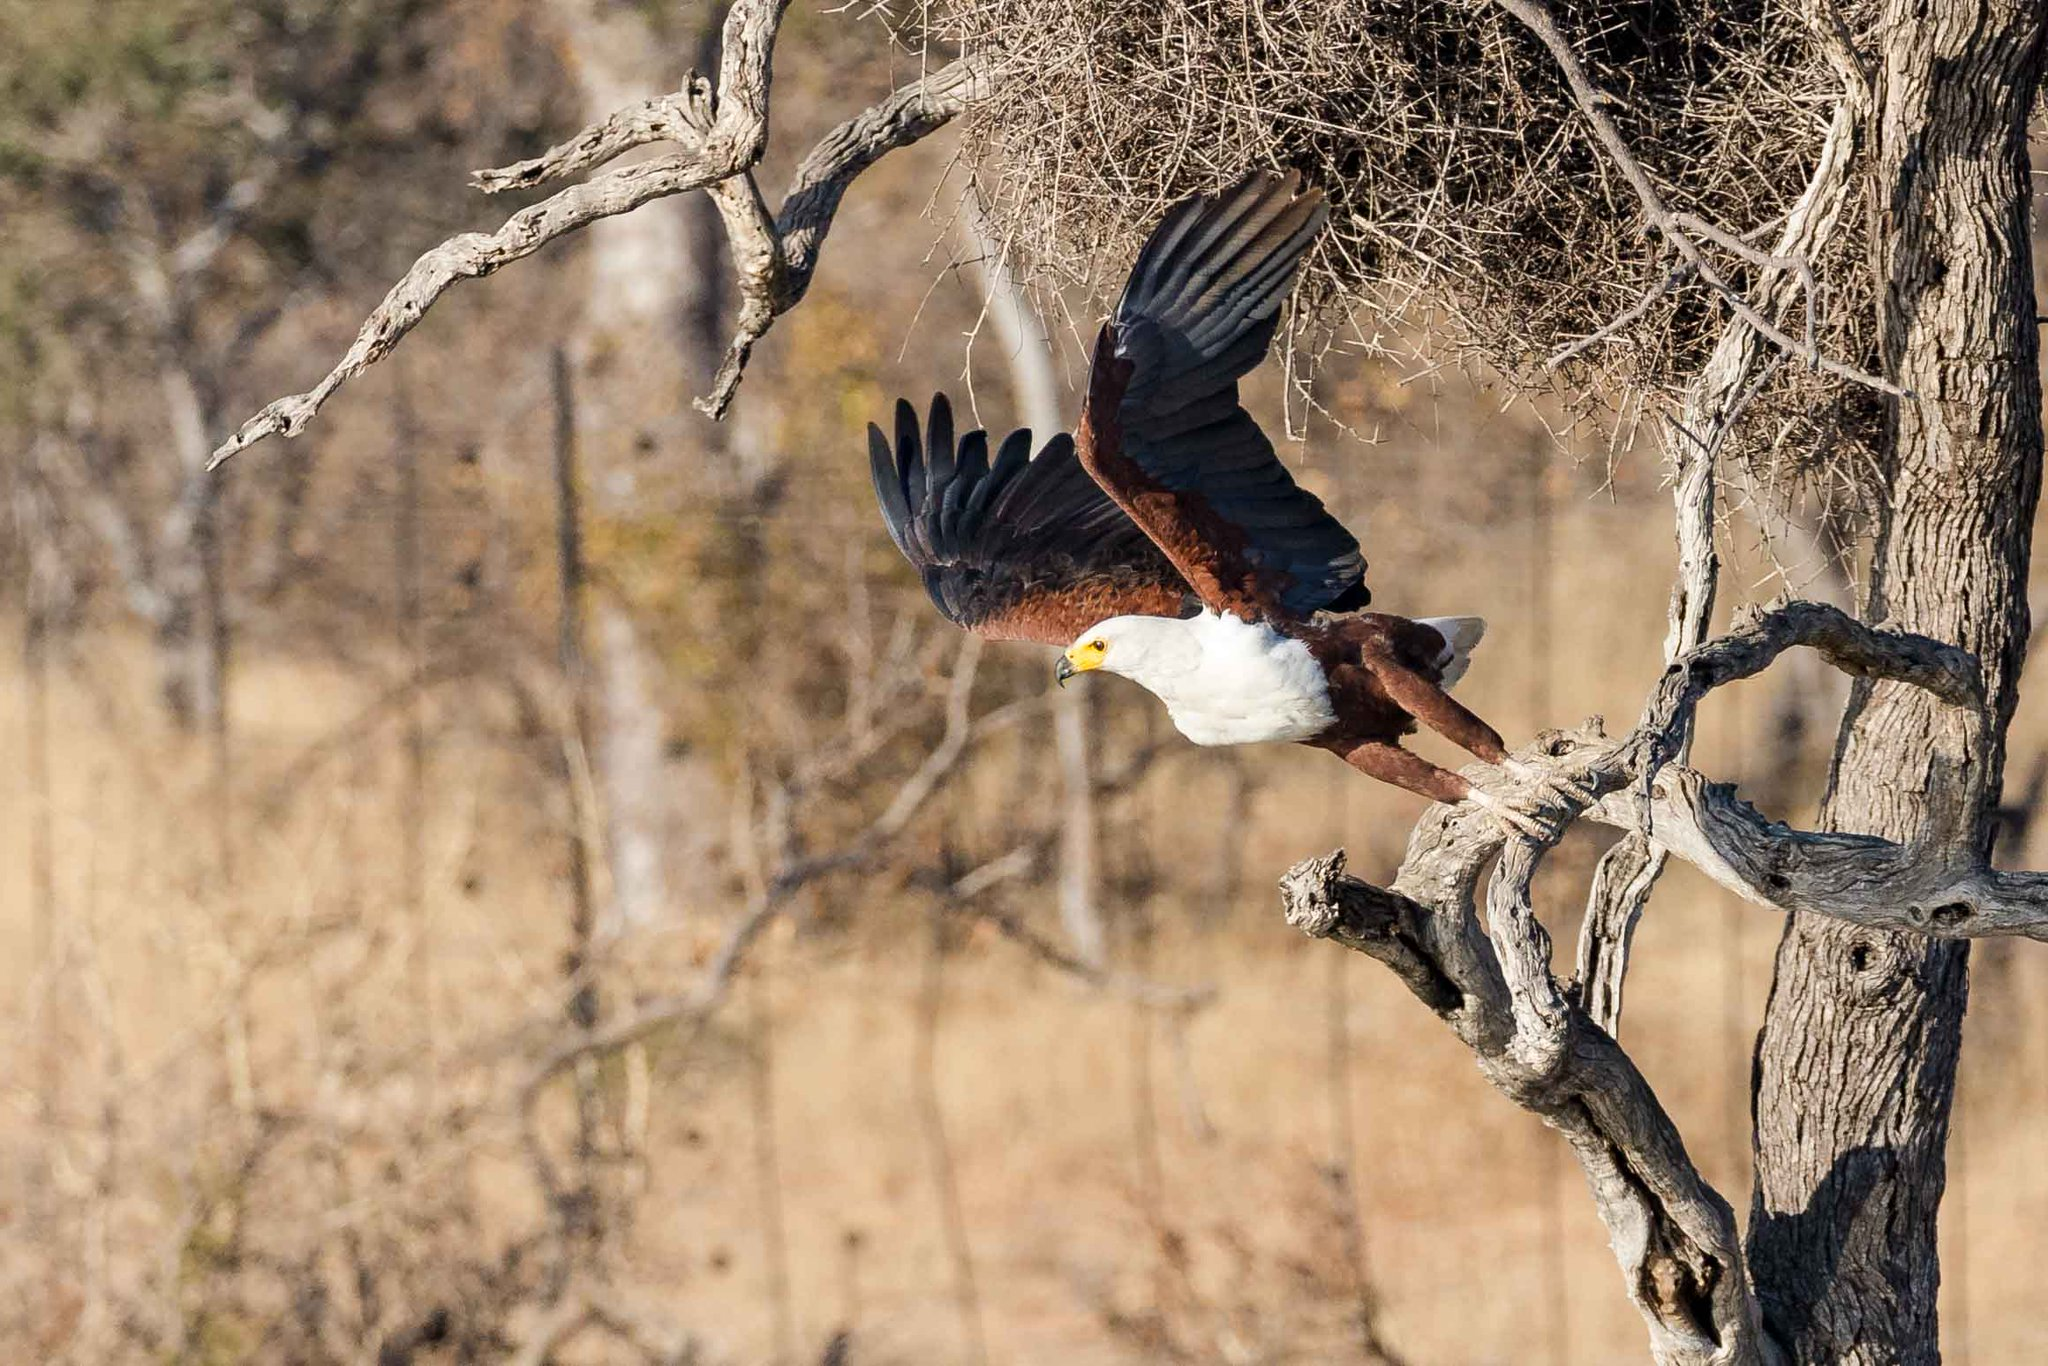 A magnificent African fish eagle launches itself from a branch at @SausageTreeCamp in the Balule Private Nature Reserve. 📸 Matthew Sussens https://t.co/b18YHbm3bq